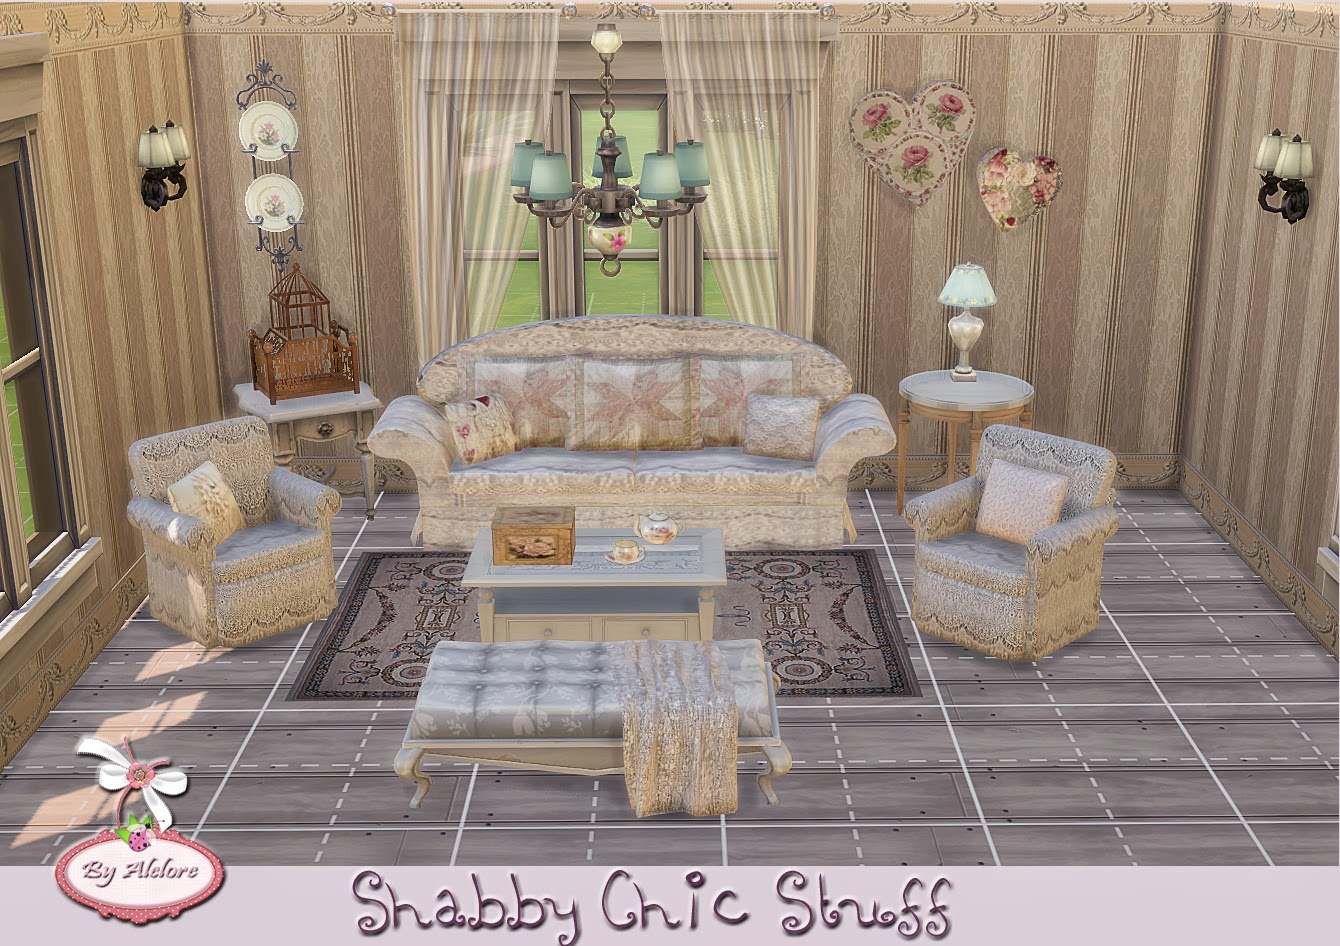 alelore sims blog shabby chic stuff. Black Bedroom Furniture Sets. Home Design Ideas